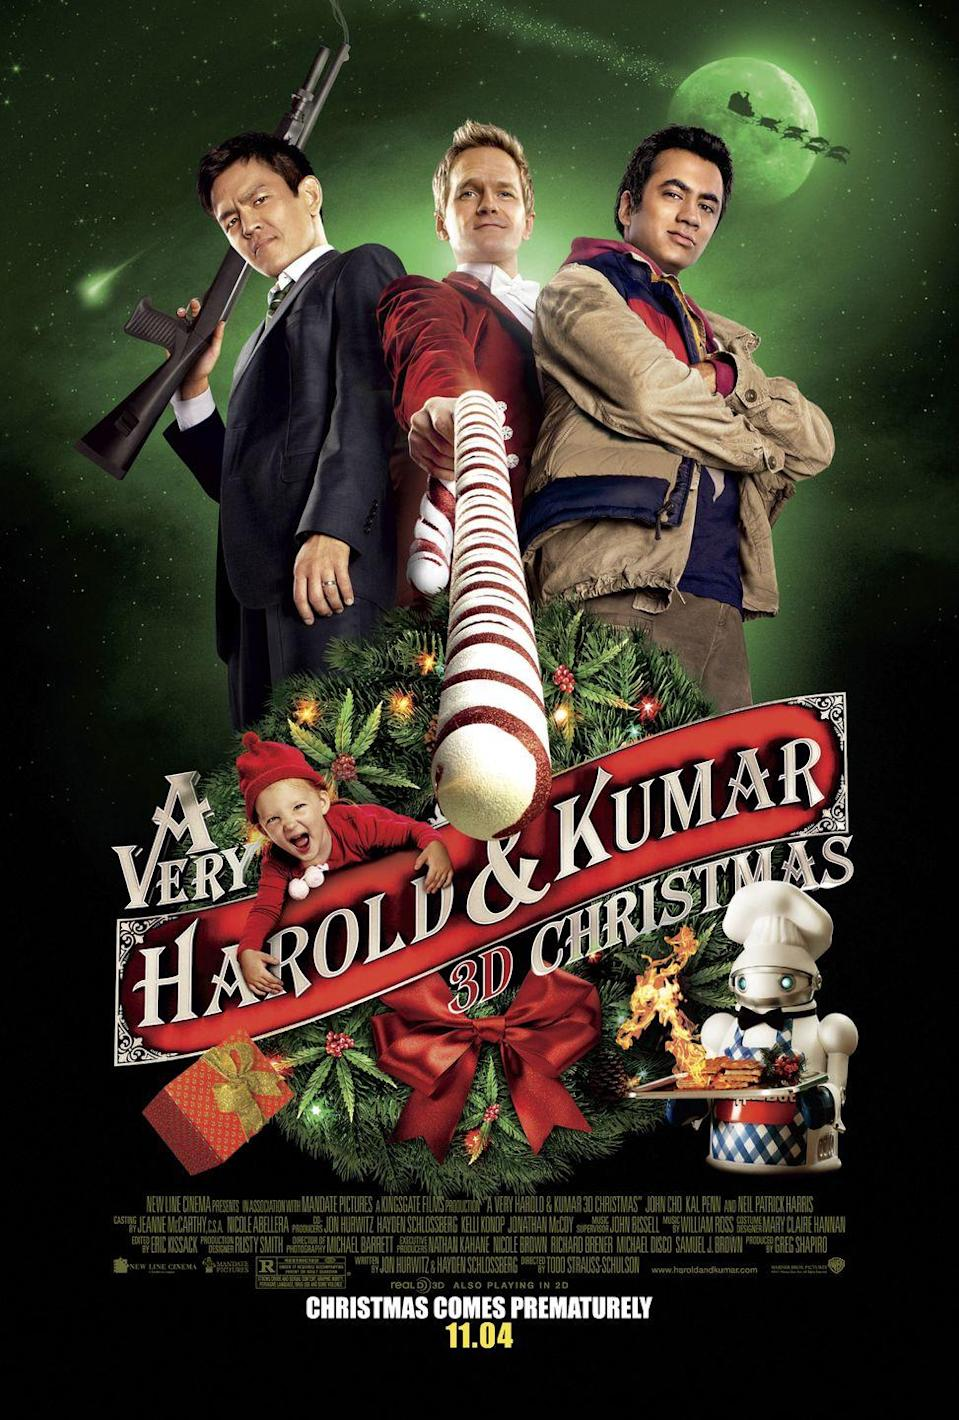 """<p>Looking for something to watch after the little ones go to bed? You'll love this hilarious holiday comedy, which is the third installment of the <em><em>Harold & Kumar </em></em>series<em><em>.</em></em></p><p><a class=""""link rapid-noclick-resp"""" href=""""https://www.amazon.com/Very-Harold-Kumar-Christmas/dp/B006PPW98U?tag=syn-yahoo-20&ascsubtag=%5Bartid%7C10055.g.1315%5Bsrc%7Cyahoo-us"""" rel=""""nofollow noopener"""" target=""""_blank"""" data-ylk=""""slk:WATCH NOW"""">WATCH NOW</a></p>"""